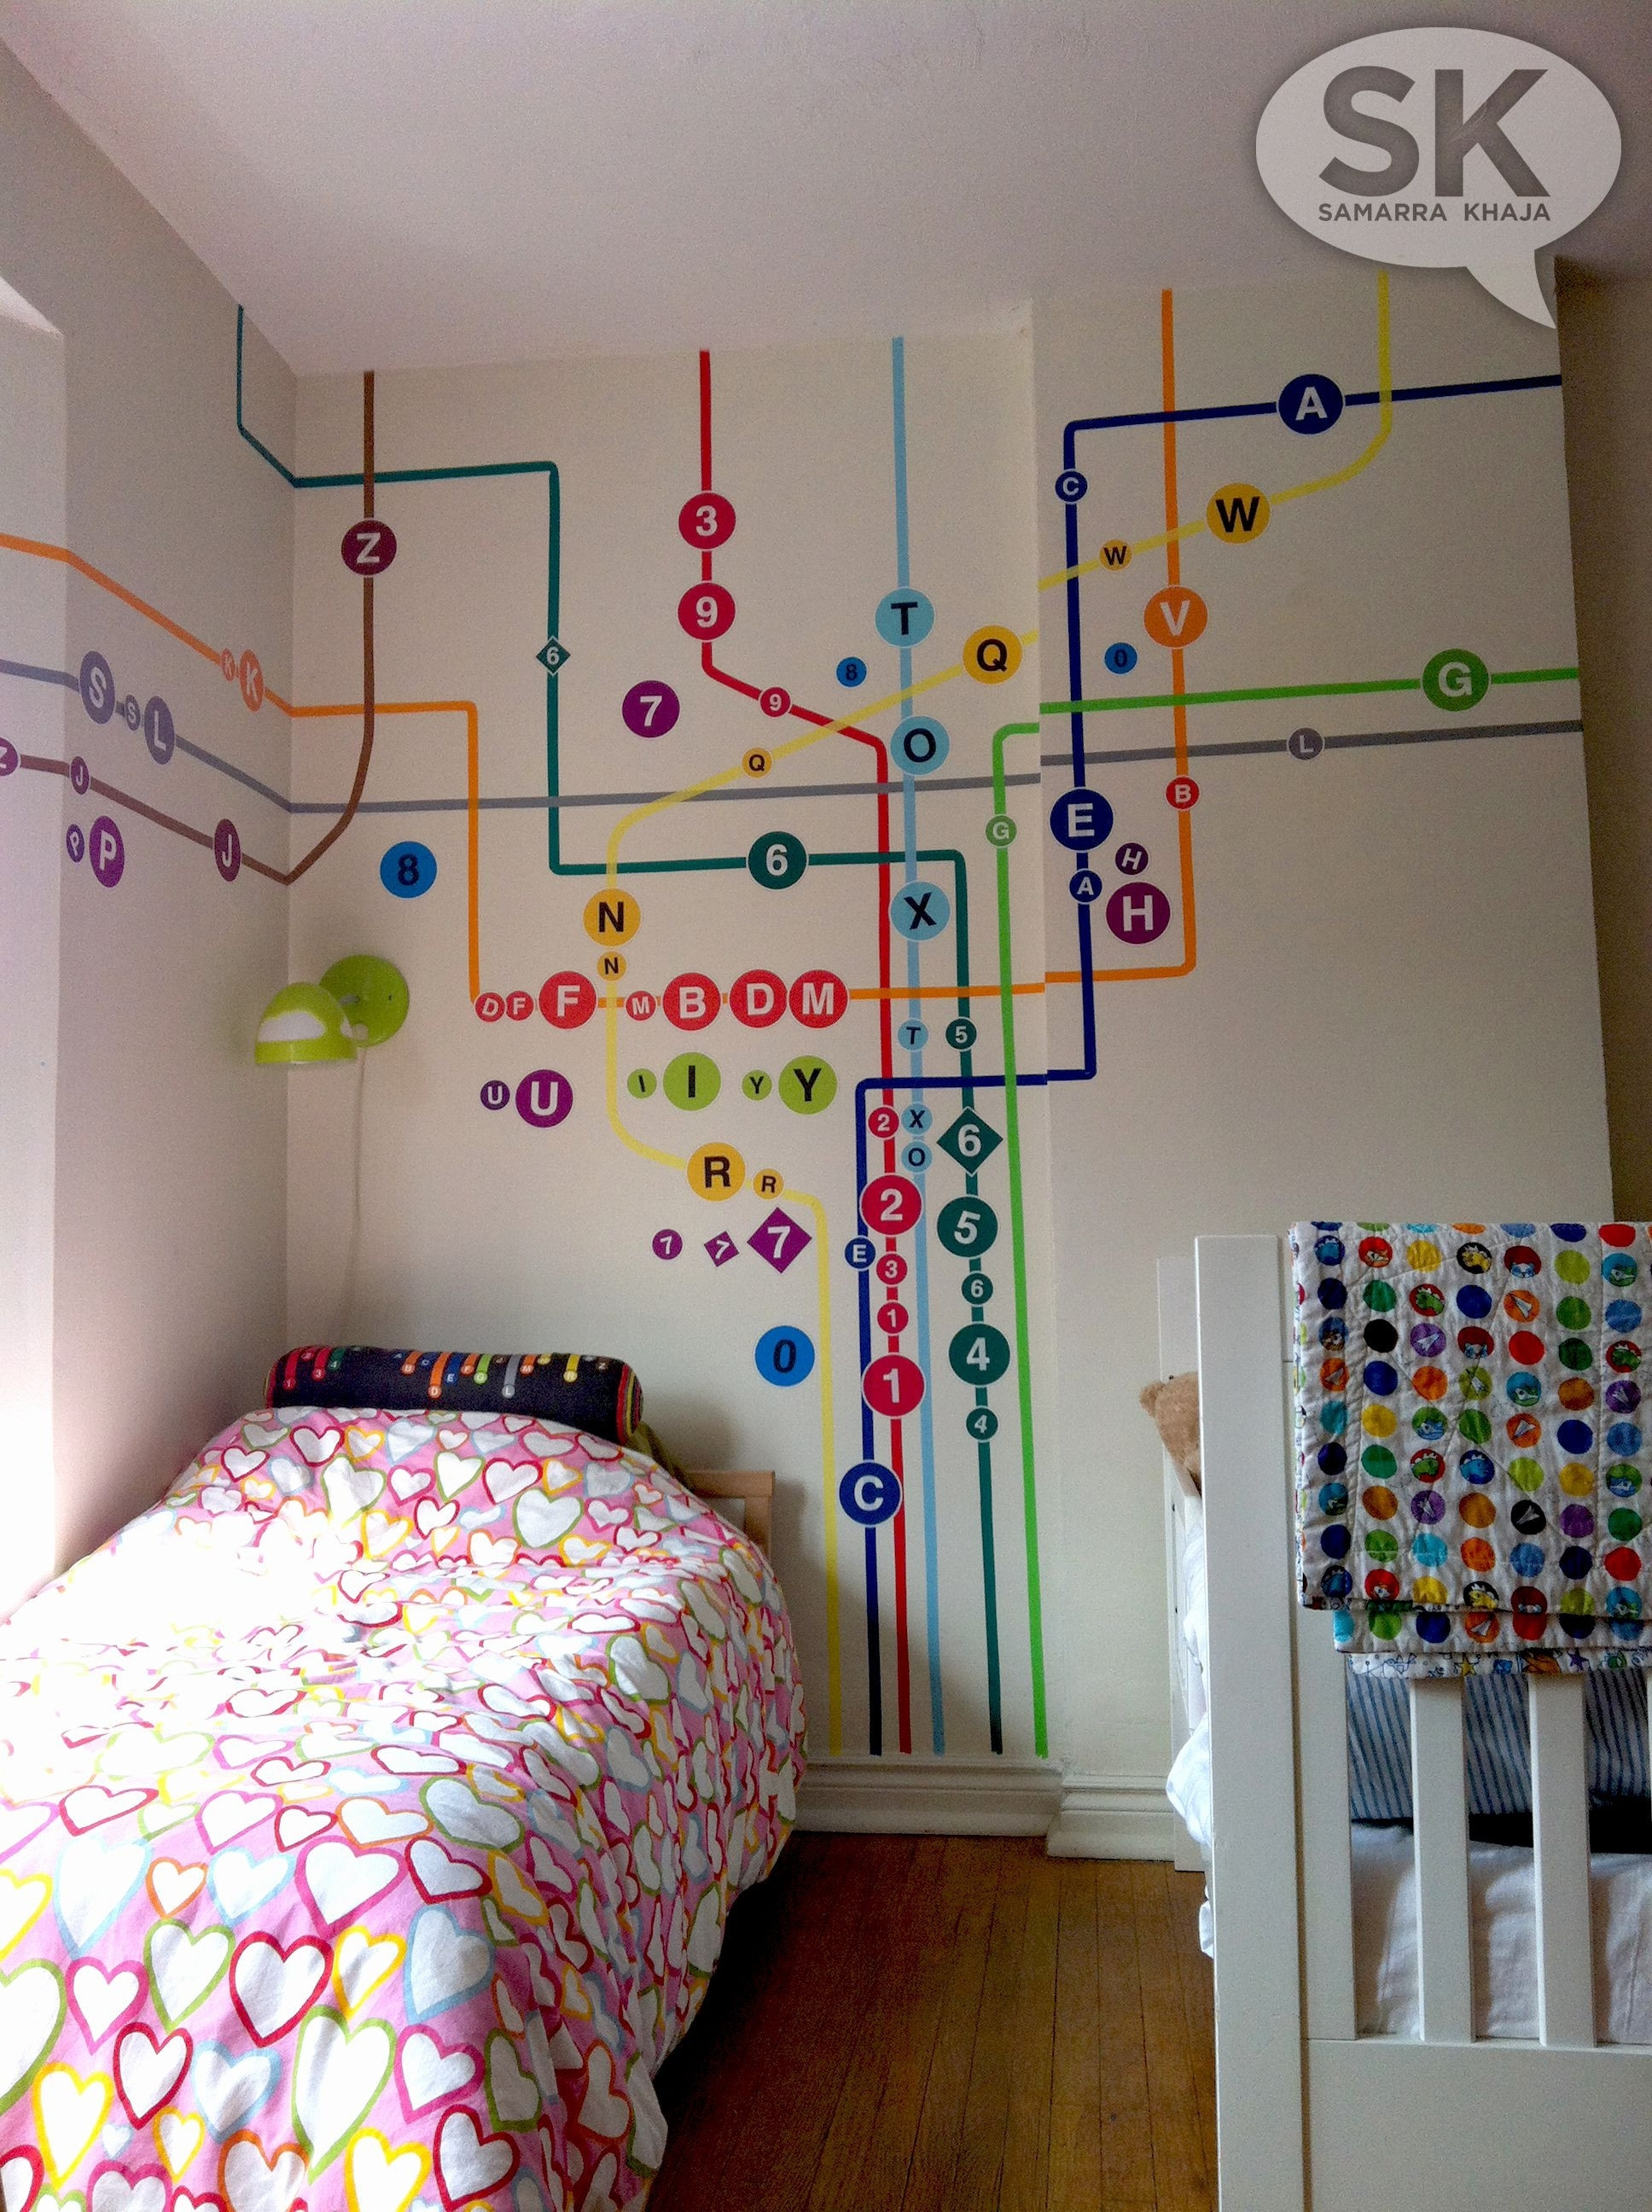 Custom Subway Map Wallpapersammyk On Spoonflower Com Make A pertaining to Nyc Subway Map Wall Art (Image 5 of 20)